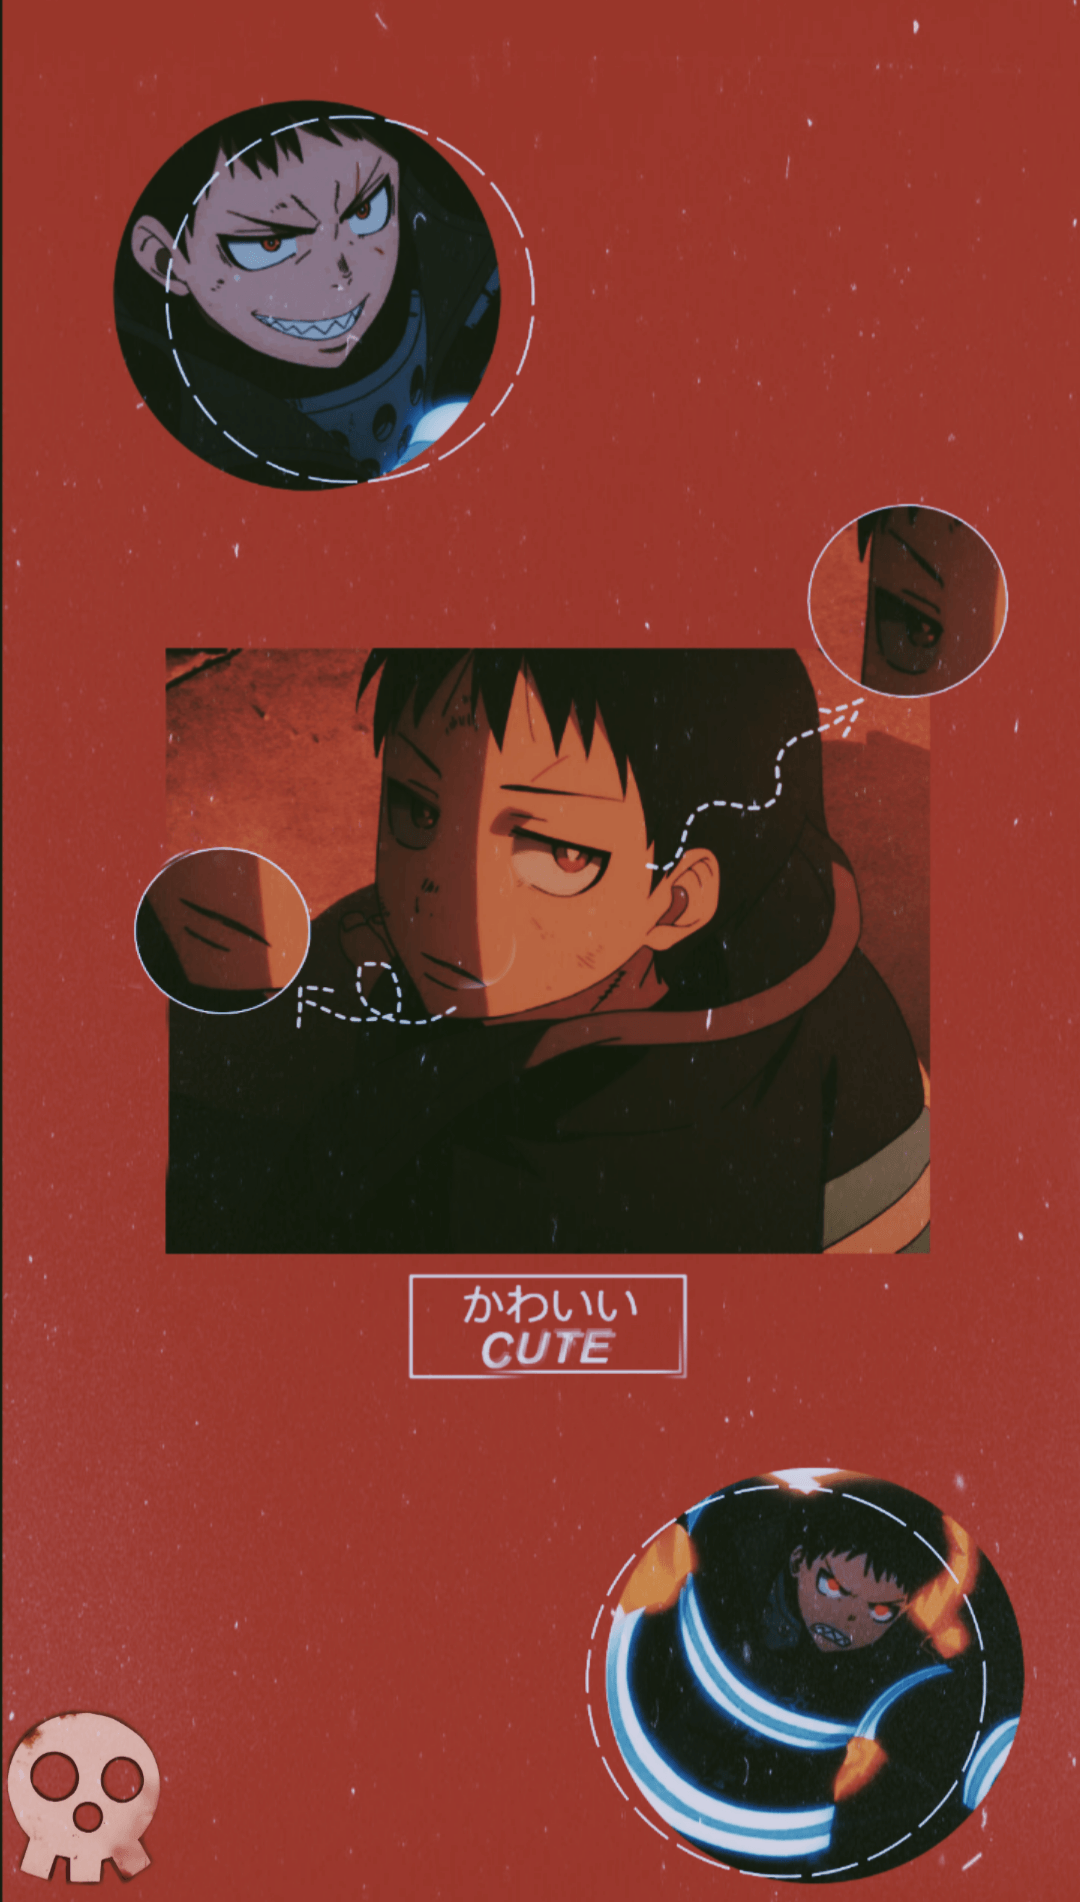 Fire Force Anime Iphone Wallpapers Wallpaper Cave Don't forget to subscribe and turn on your notifications 🔔 for more videos like this and comment for video suggestions. fire force anime iphone wallpapers